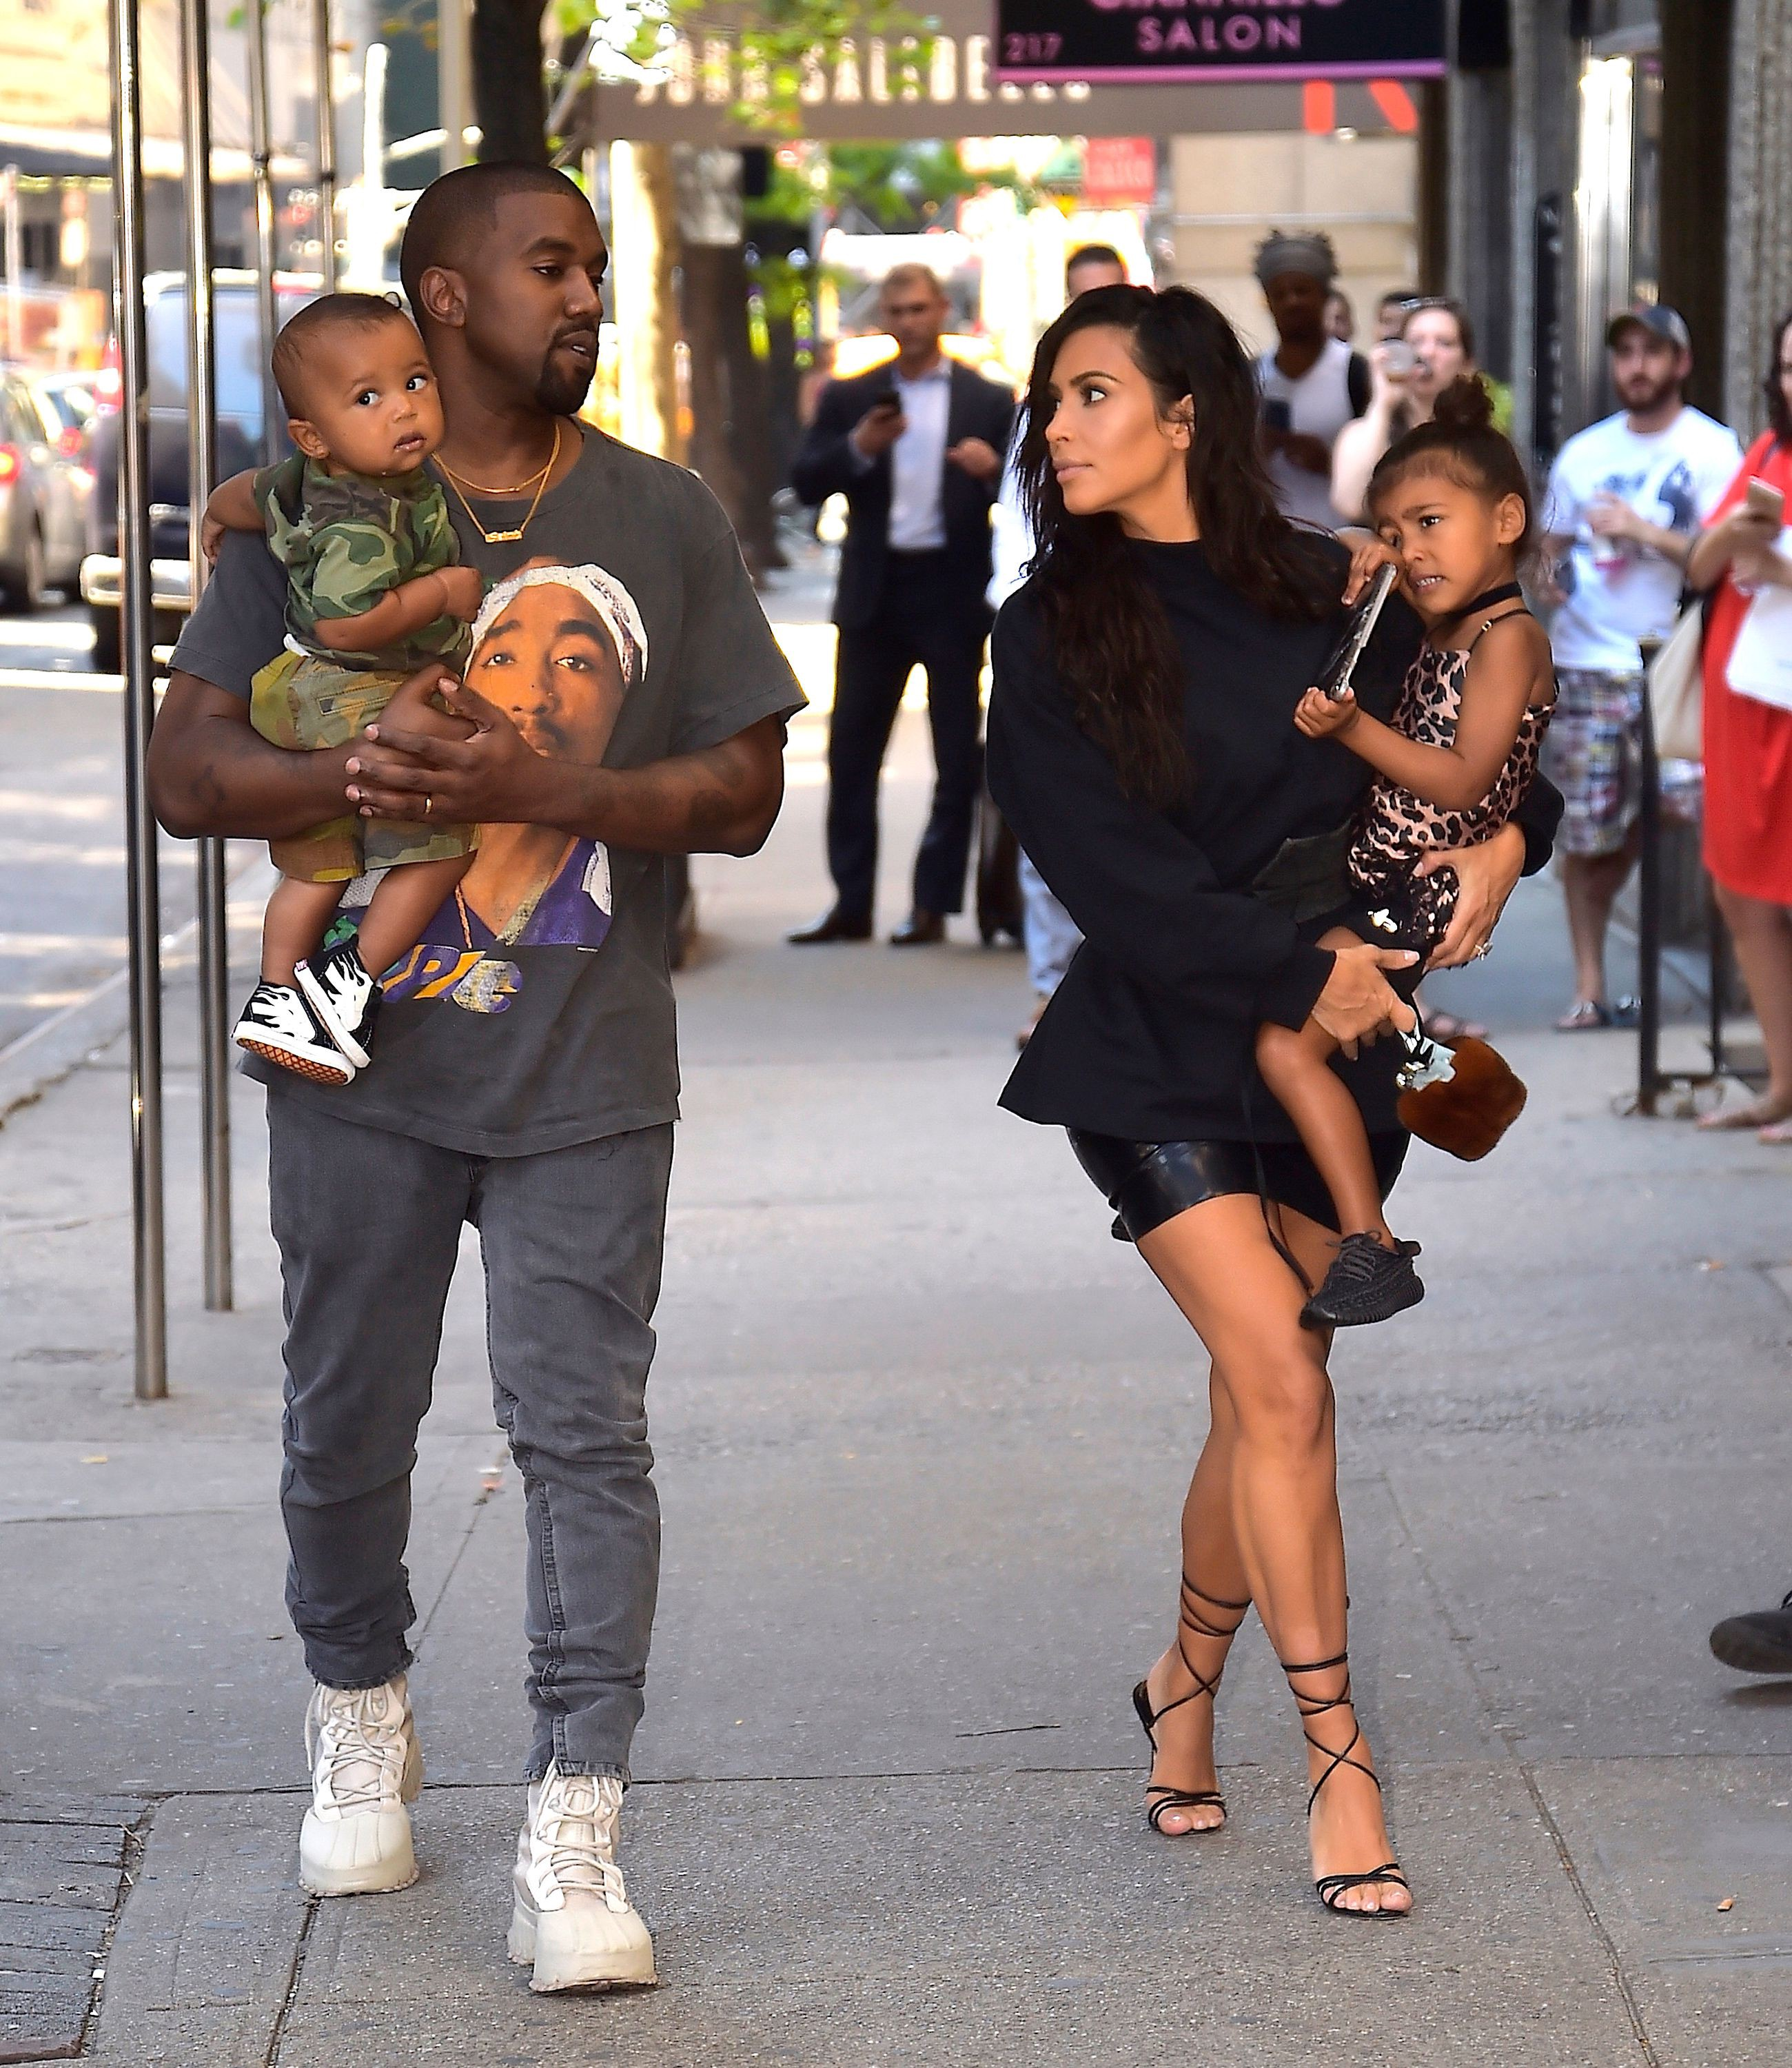 26a07cd1b This Tax Season, Kim Kardashian and Kanye West are the Genius Celebrities  and Power Couple You Should Gain Motivation From to Succeed